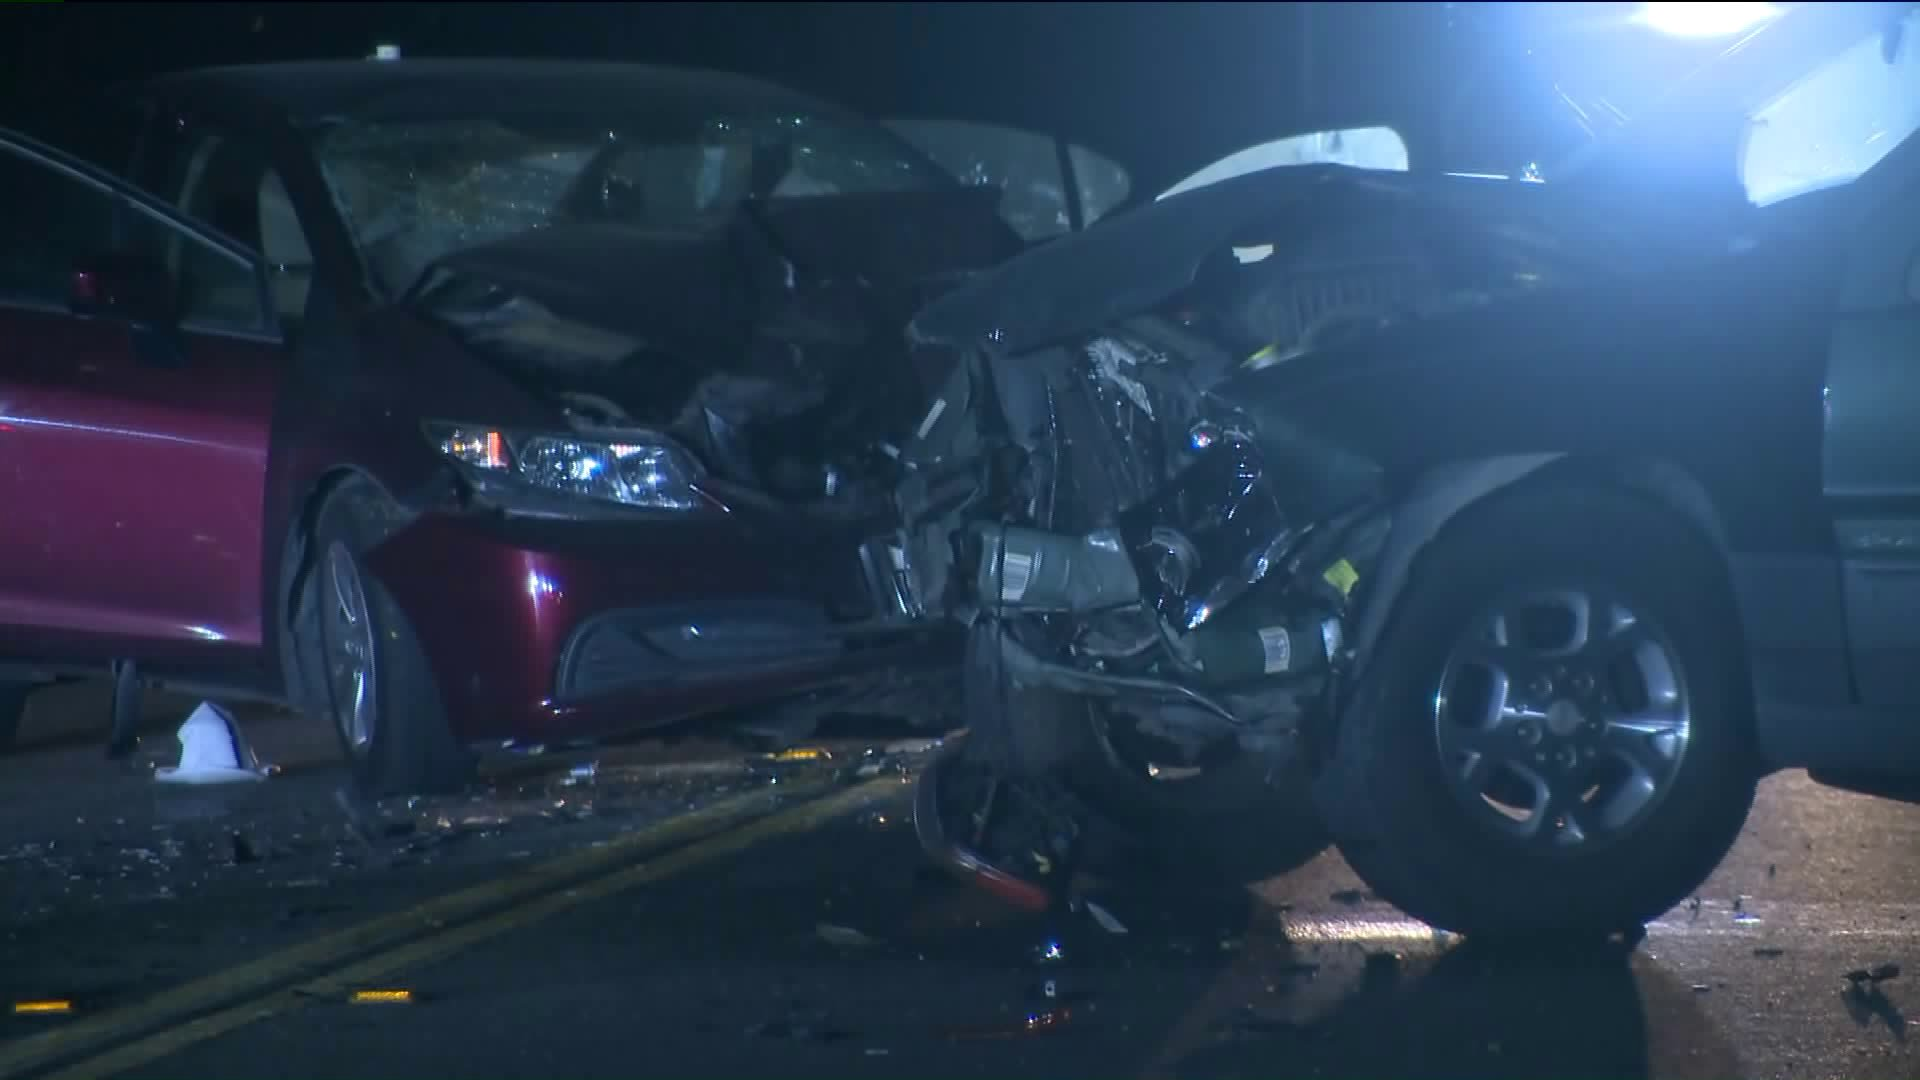 Five people, including two children, were hurt when an alleged DUI driver crashed head-on into another vehicle in Palmdale on Nov. 3, 2019. (Credit: KTLA)